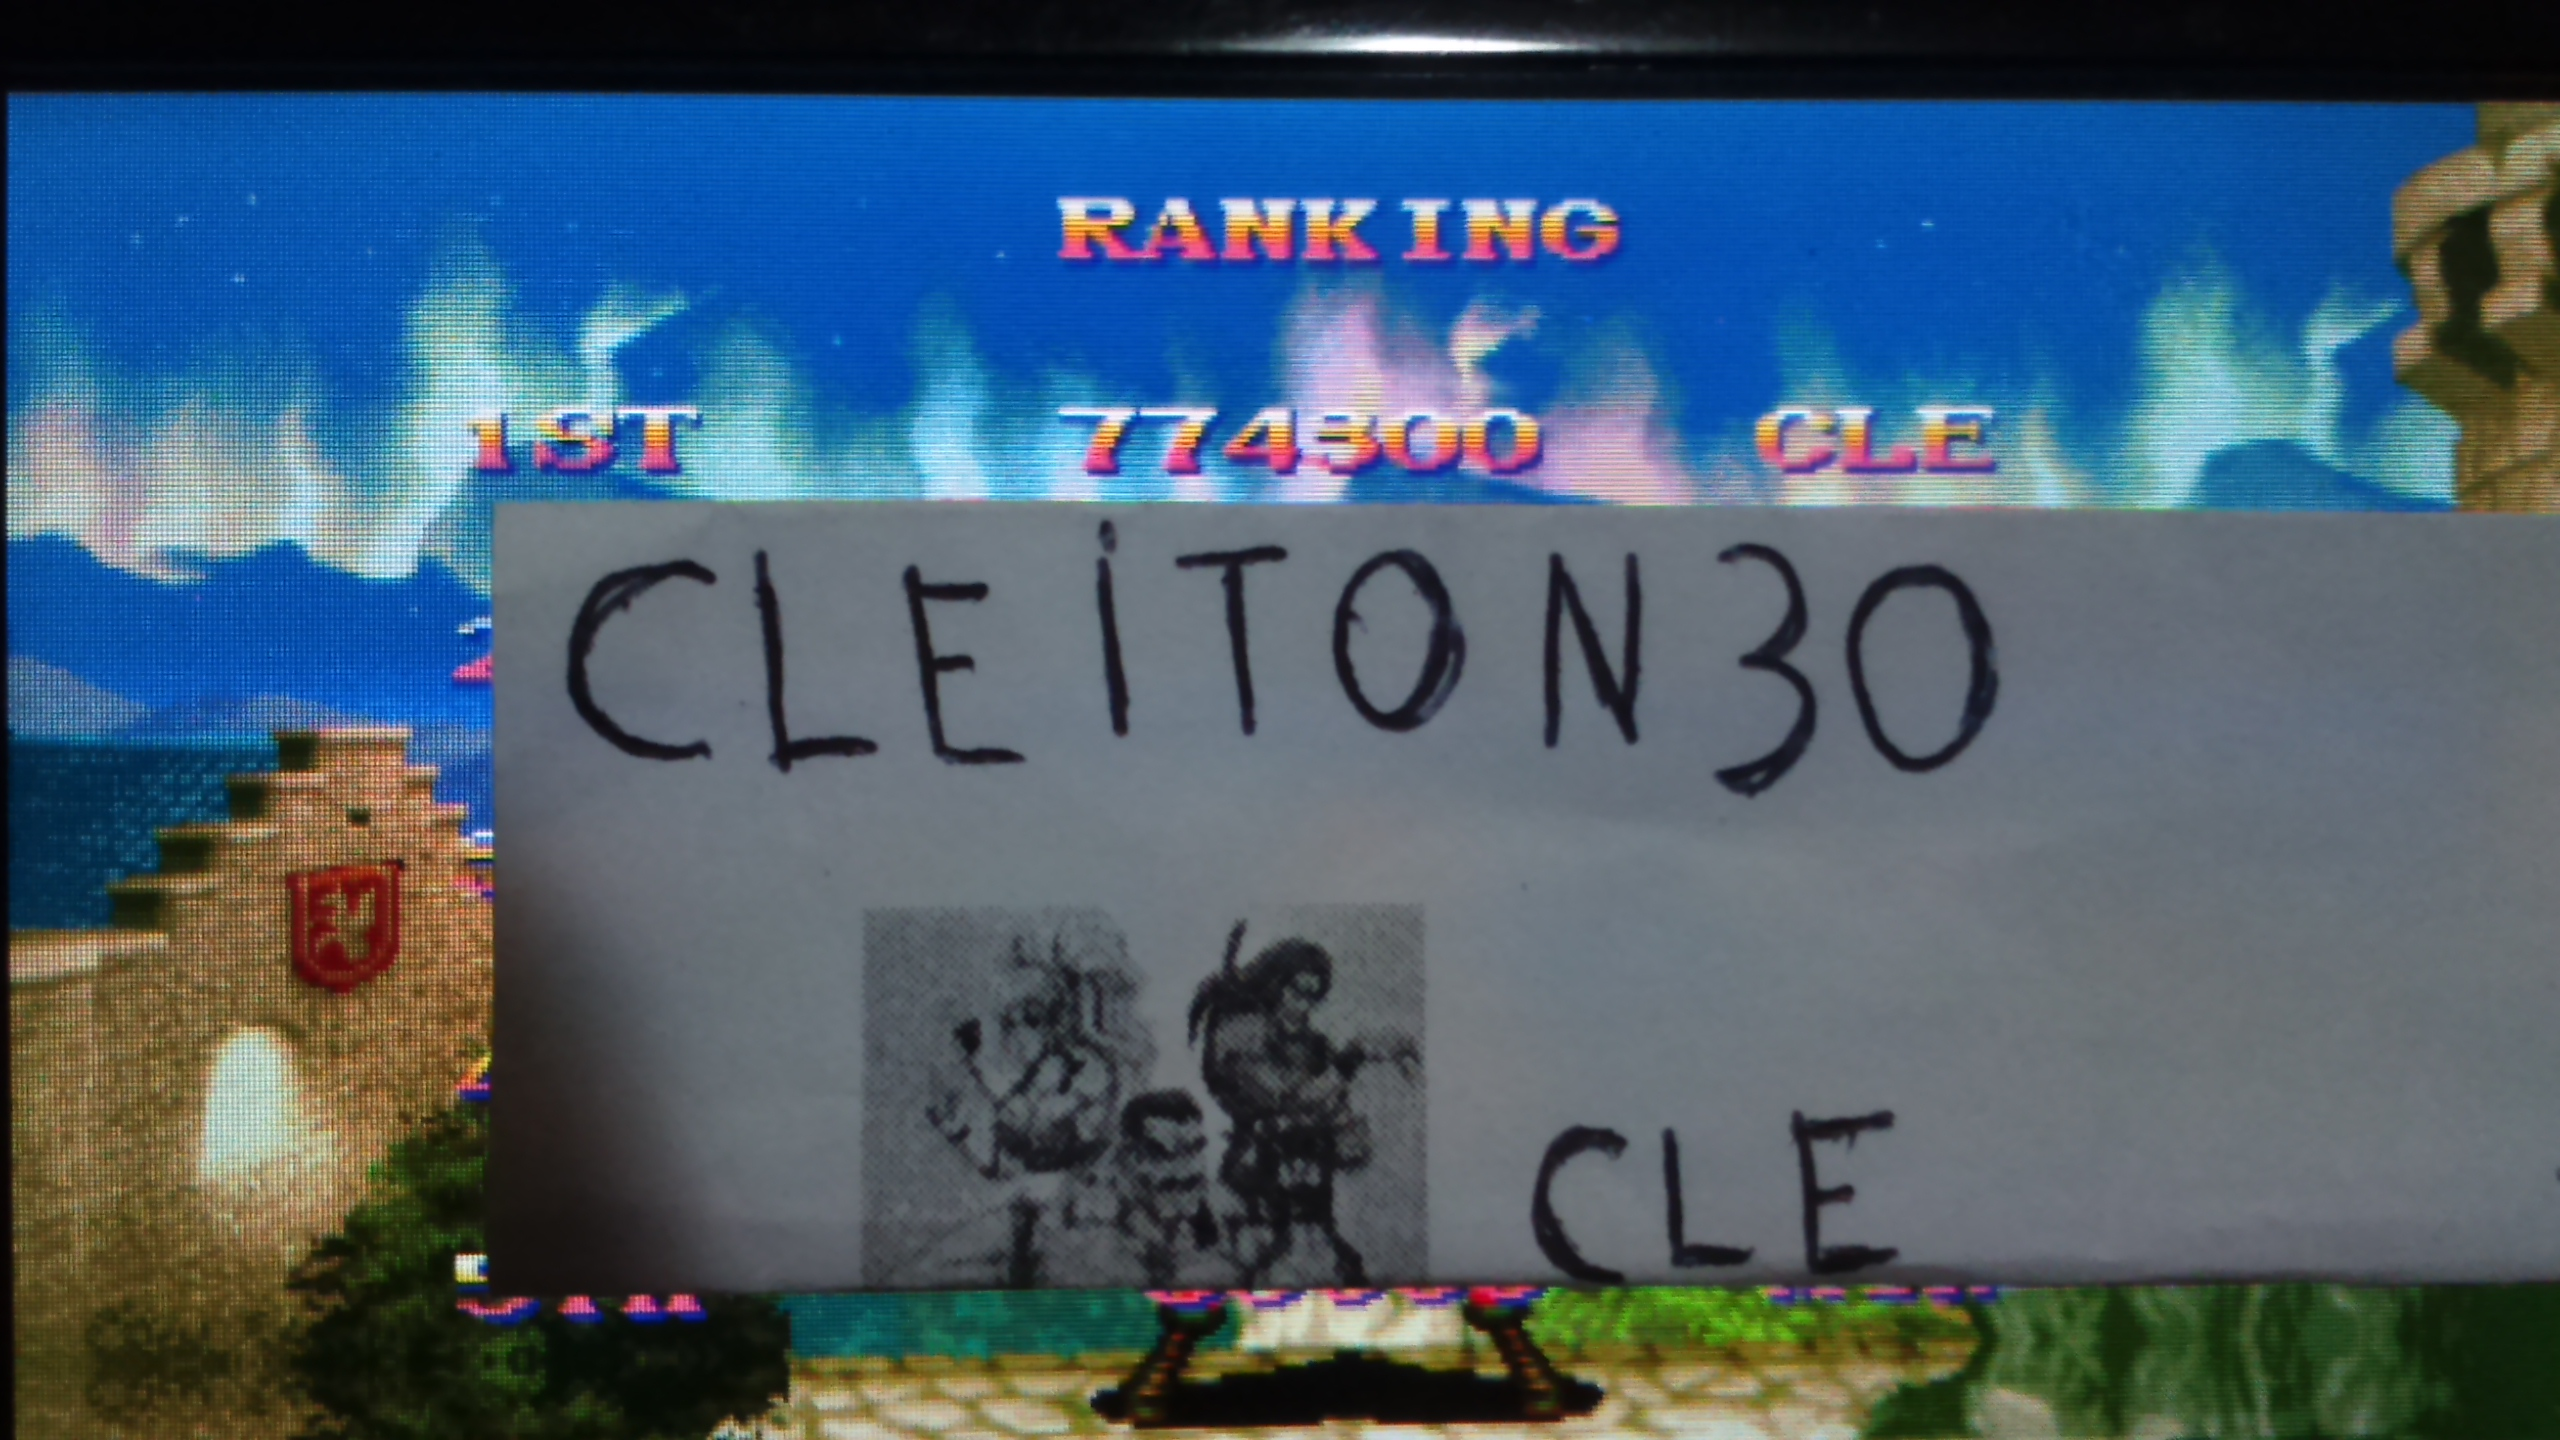 Cleiton30: Super Street Fighter II: The New Challengers [ssf2] (Arcade Emulated / M.A.M.E.) 774,300 points on 2016-05-22 22:34:10